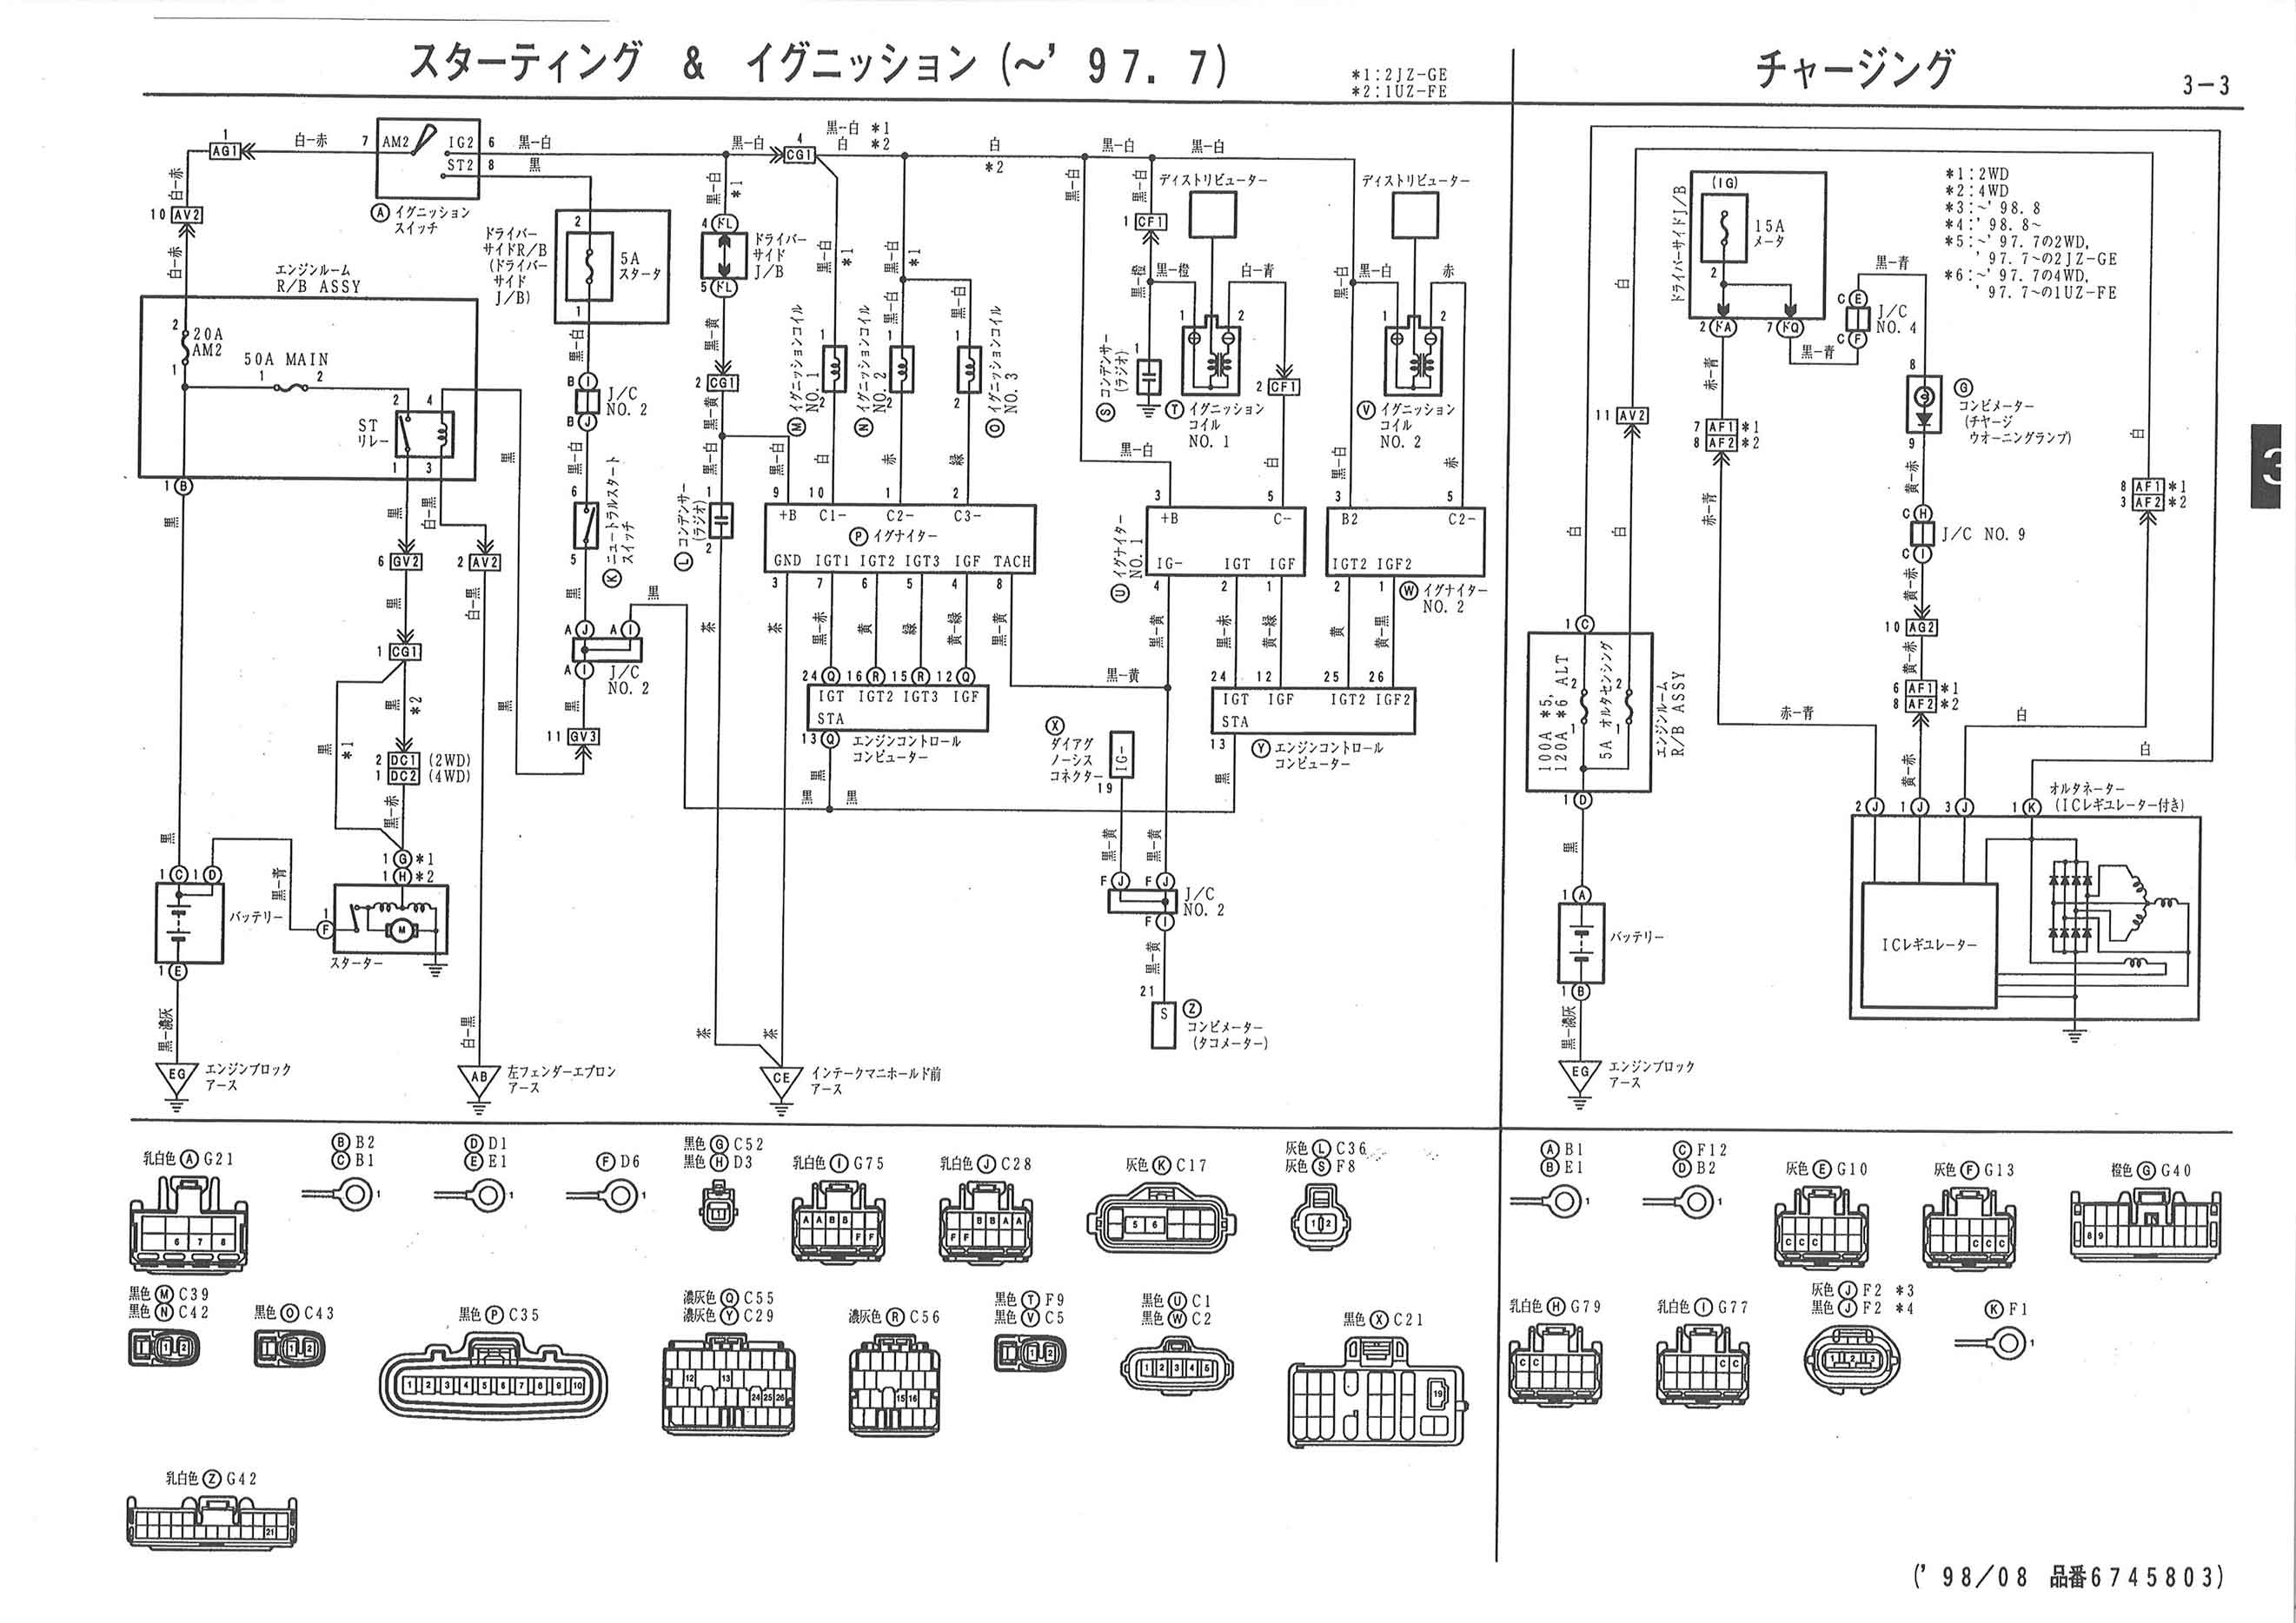 Apexi Safc Wiring Diagram 2jz Ge Schematic 2019 2 Besides Gte Harness On Get